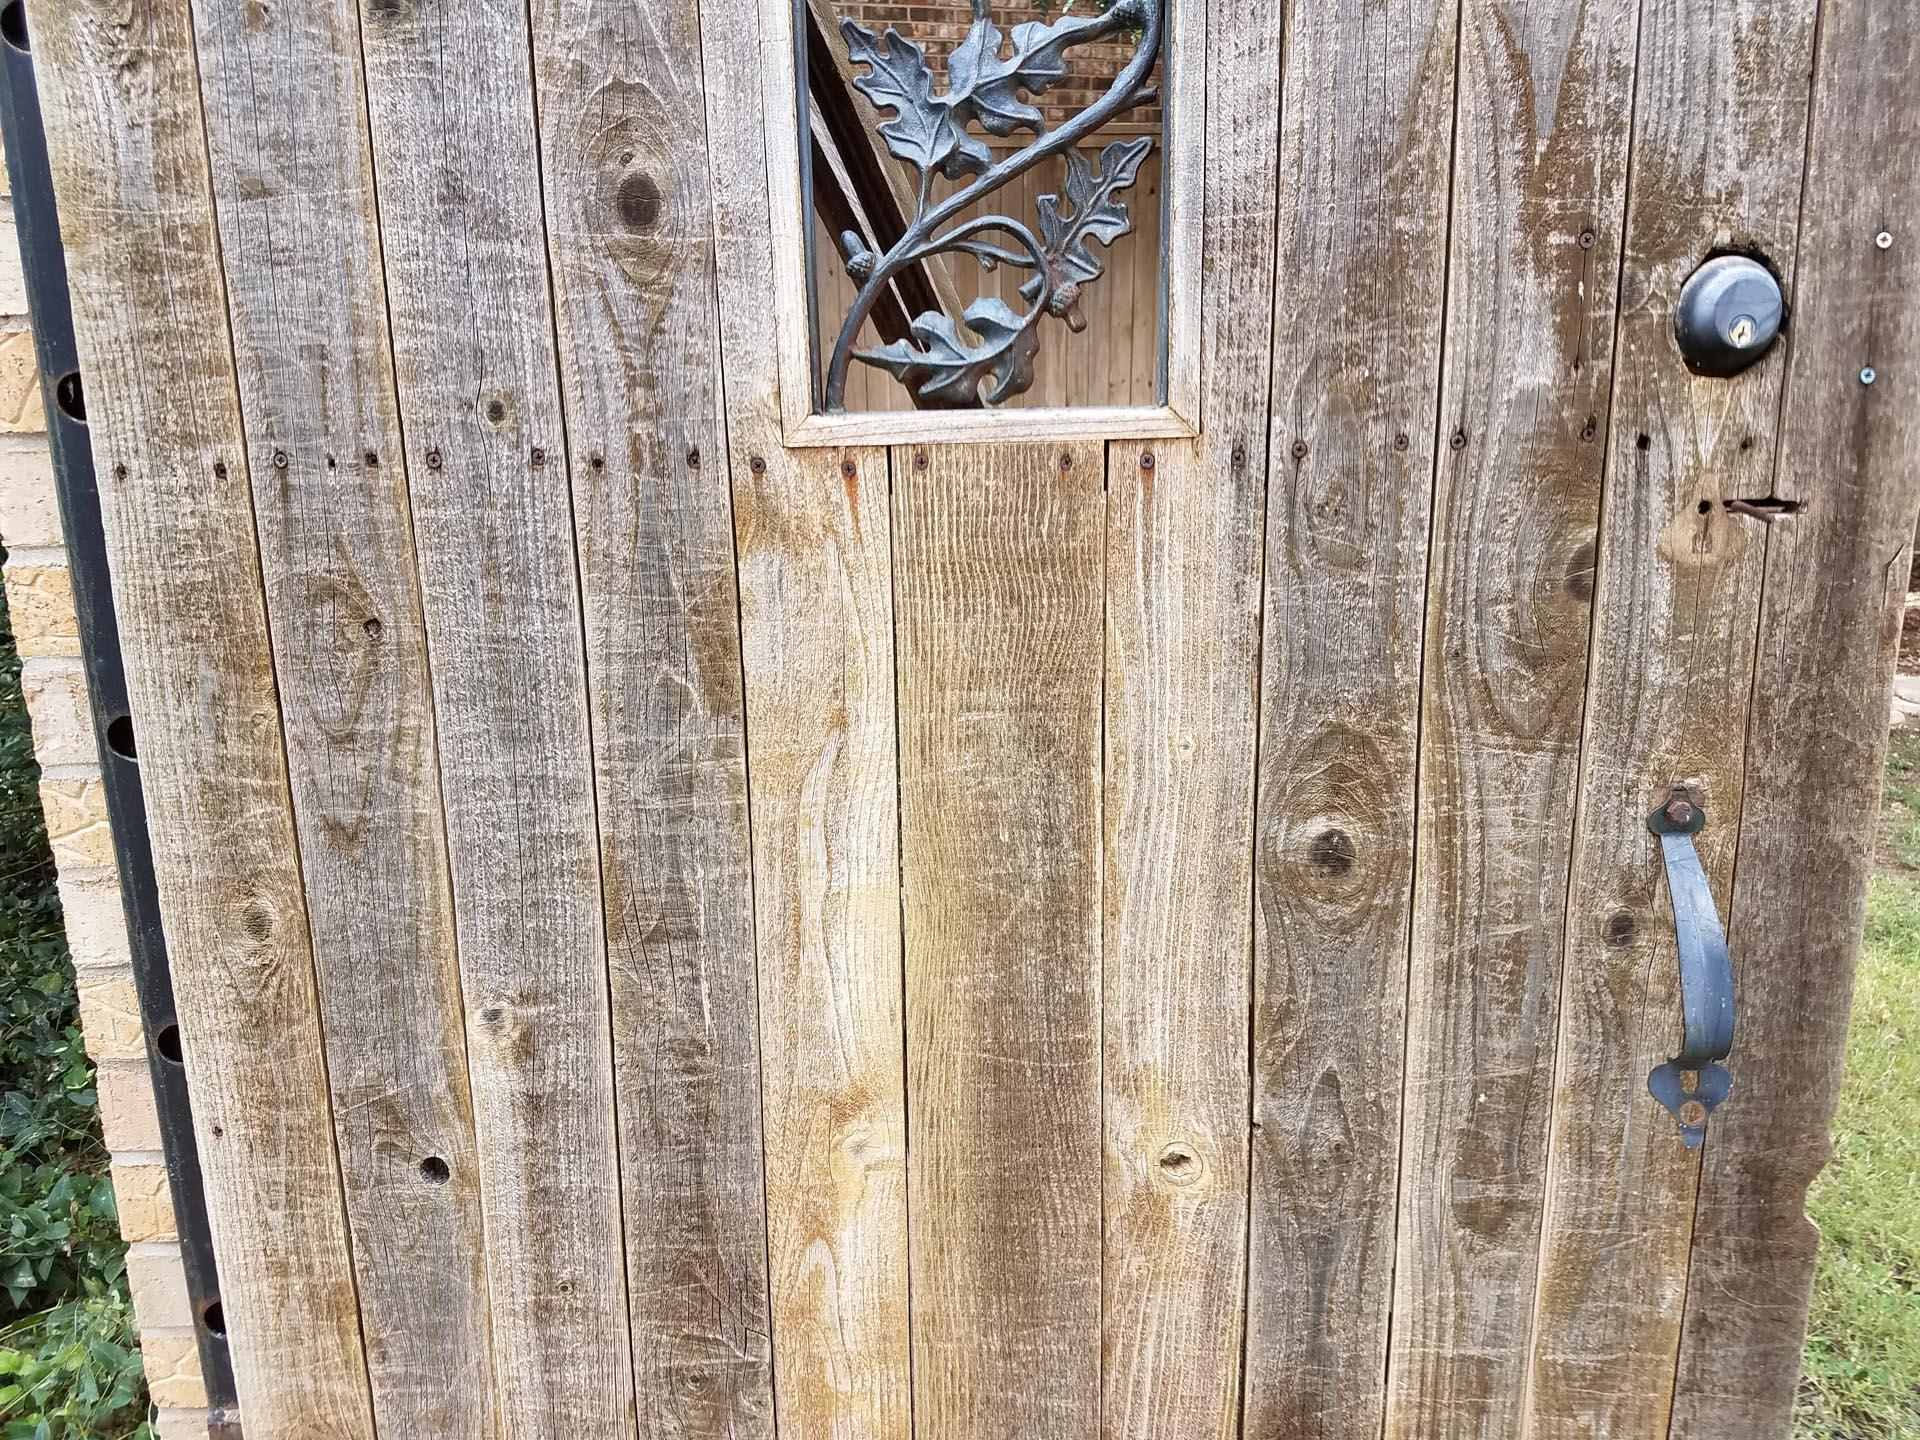 Best Value Fencing And Home Services image 17